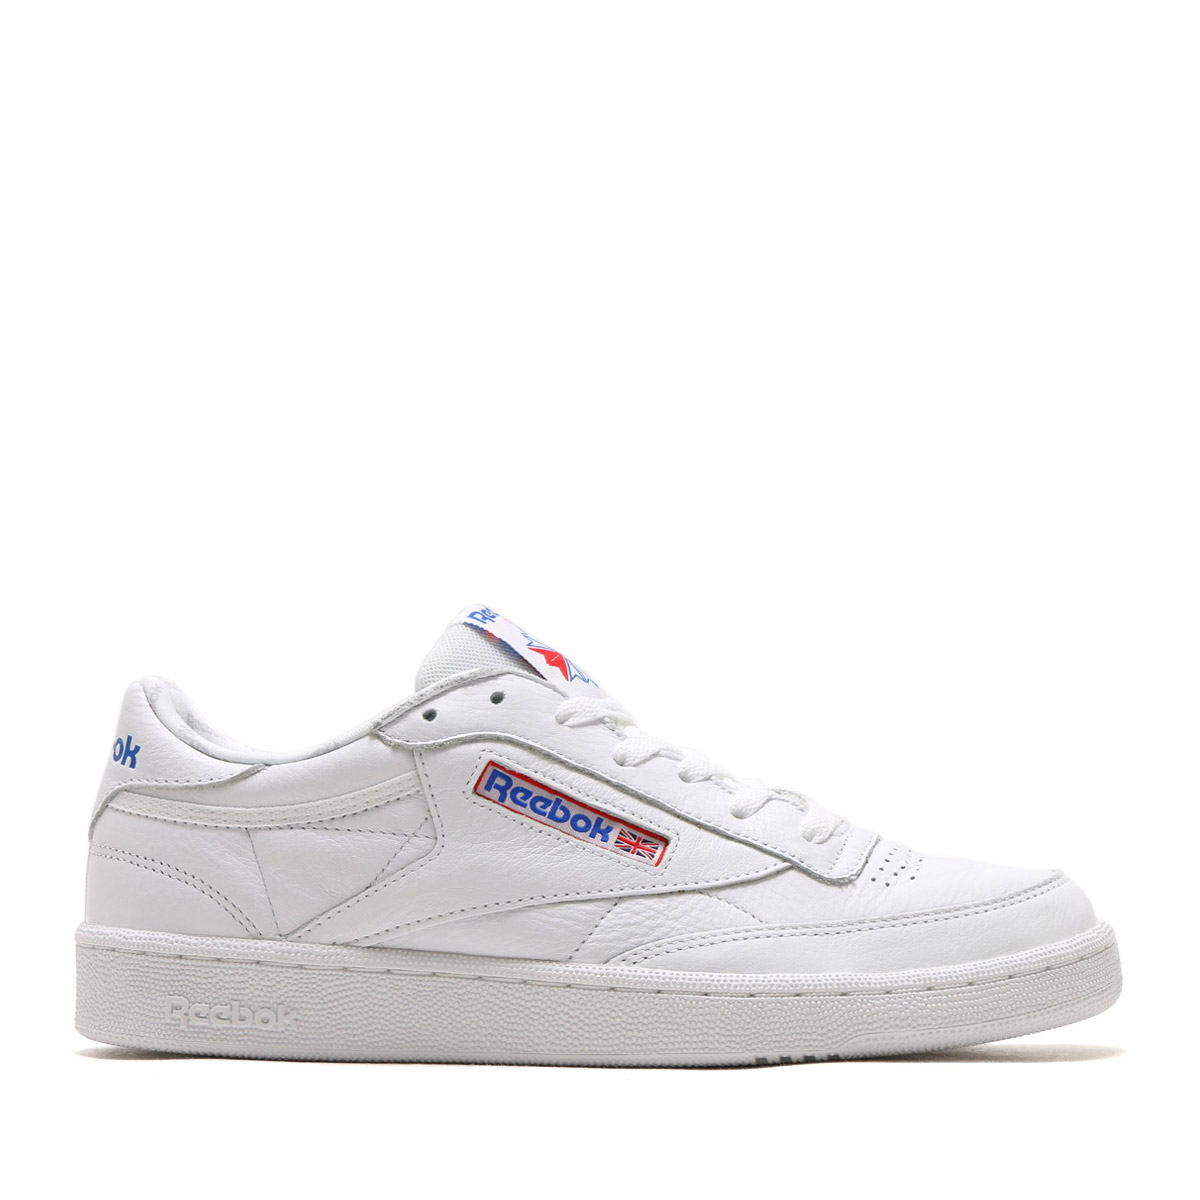 867a1ca5115 Reebok CLUB C 85 SO (Reebok club C 85 SO) (WHITE LGH SOLID GRAY VITAL  BLUE PRIMAL RED BLACK) 17FW-S